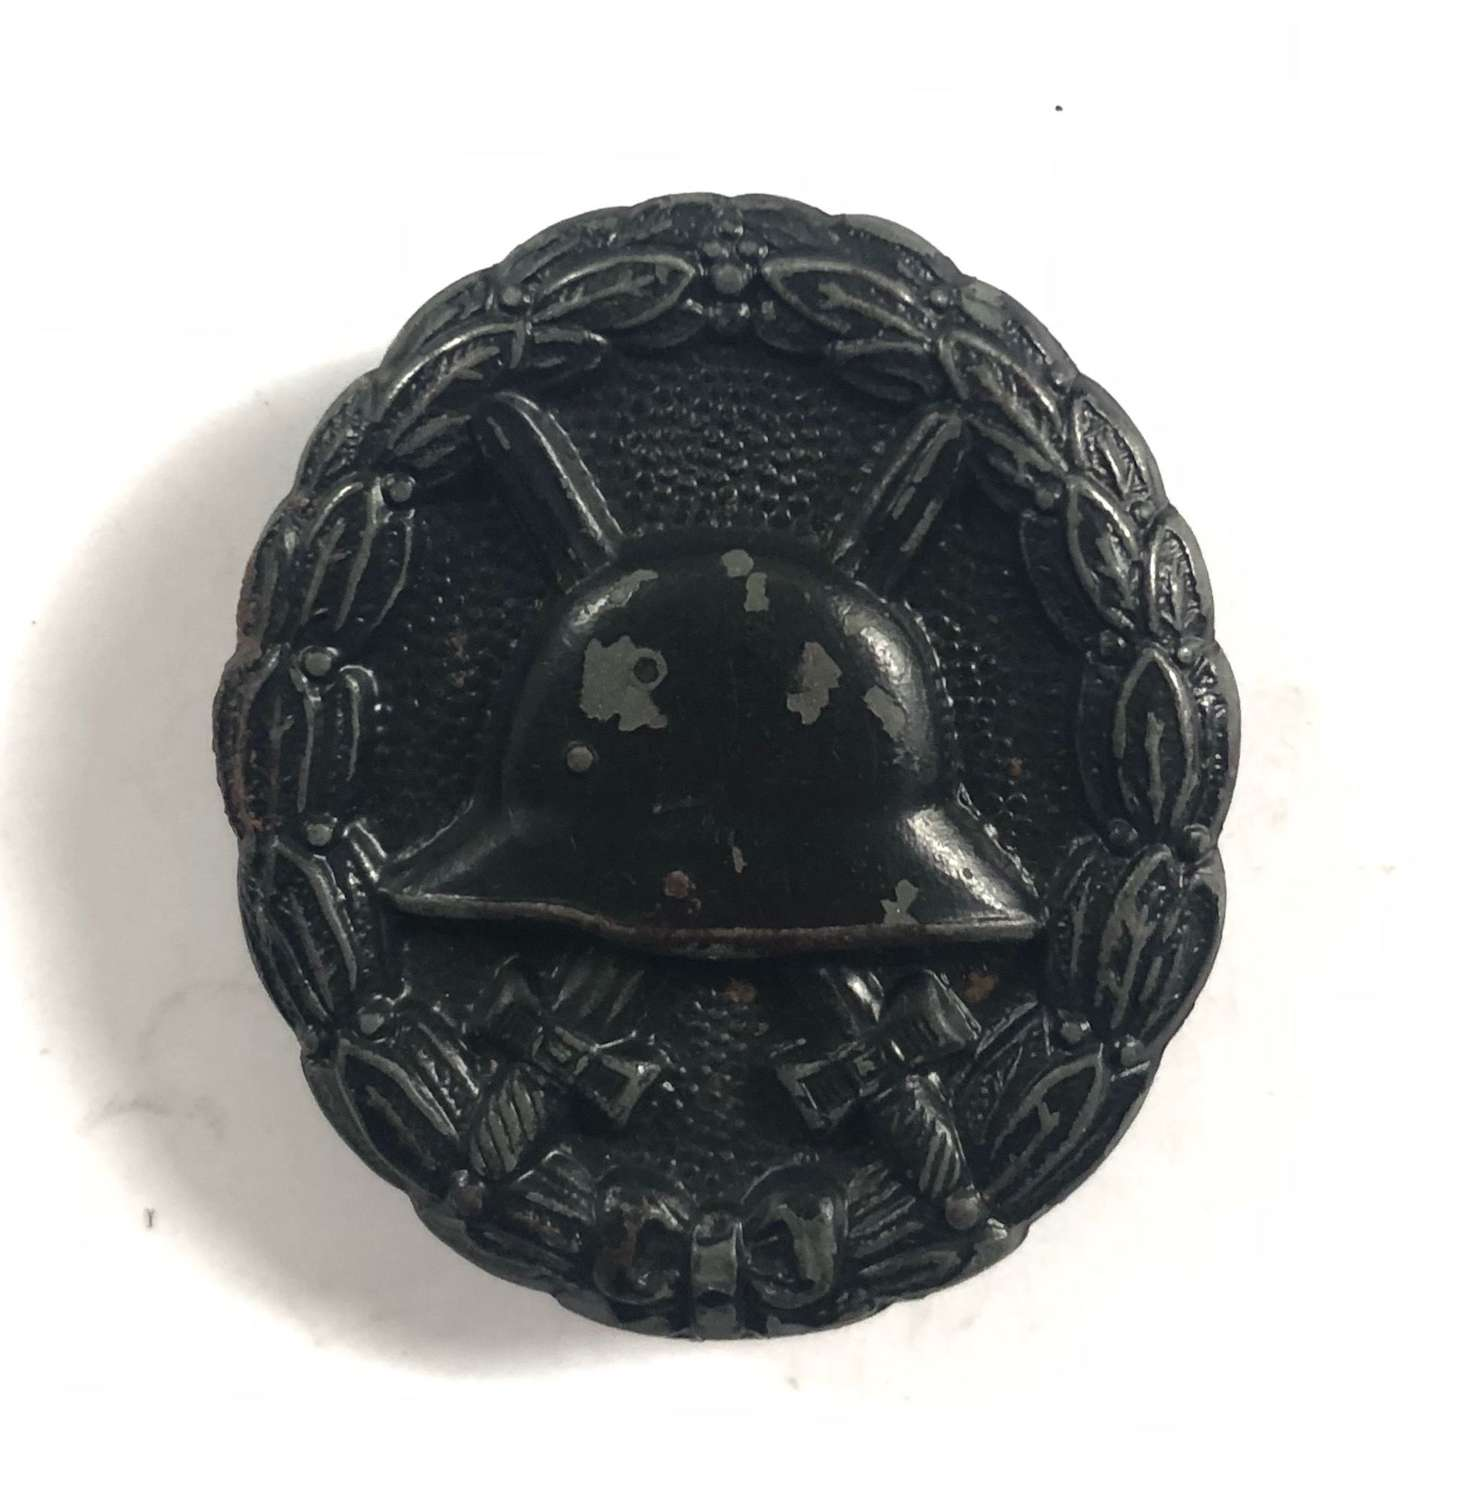 WW1 Imperial German Wound Badge.